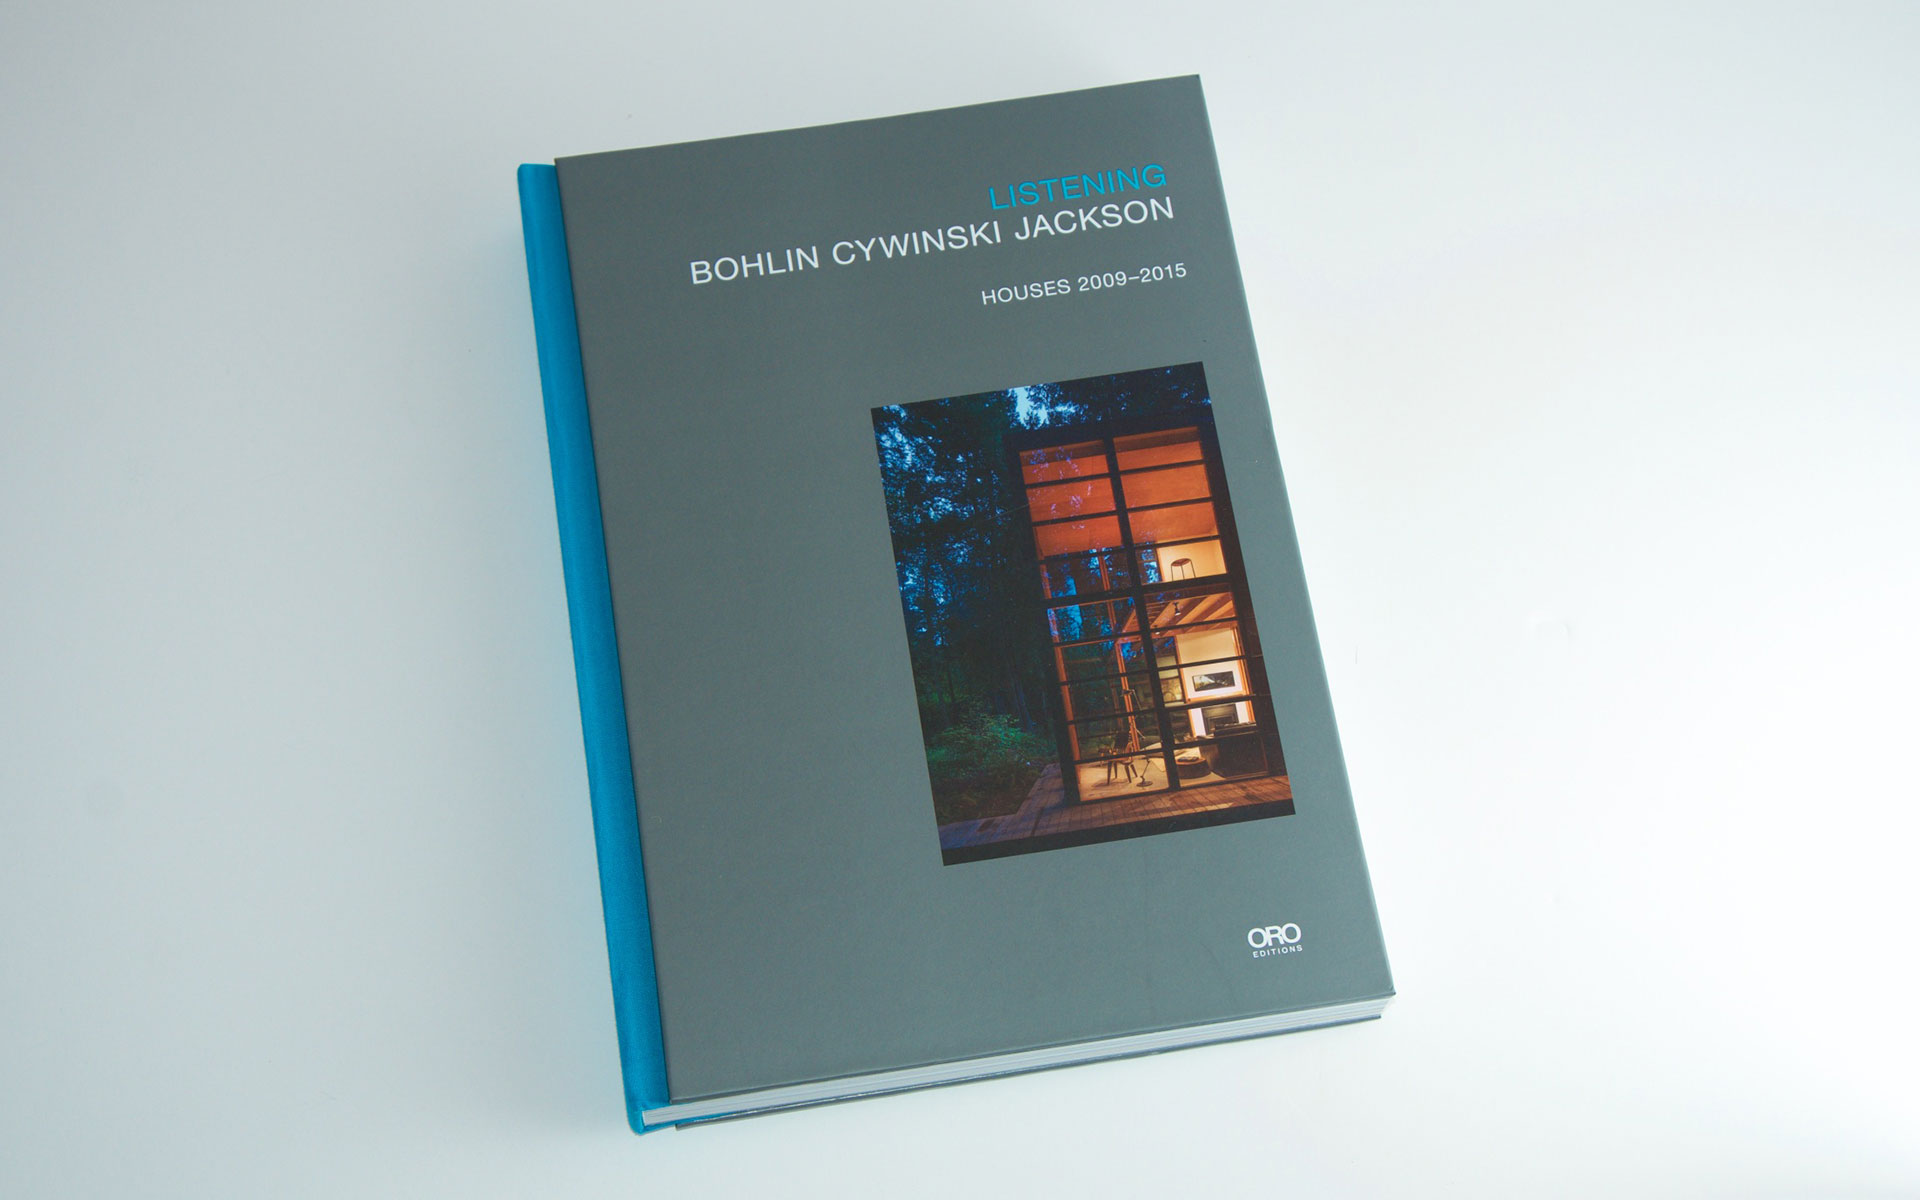 Hardcover deluxe architectural monograph book design by Pablo Mandel